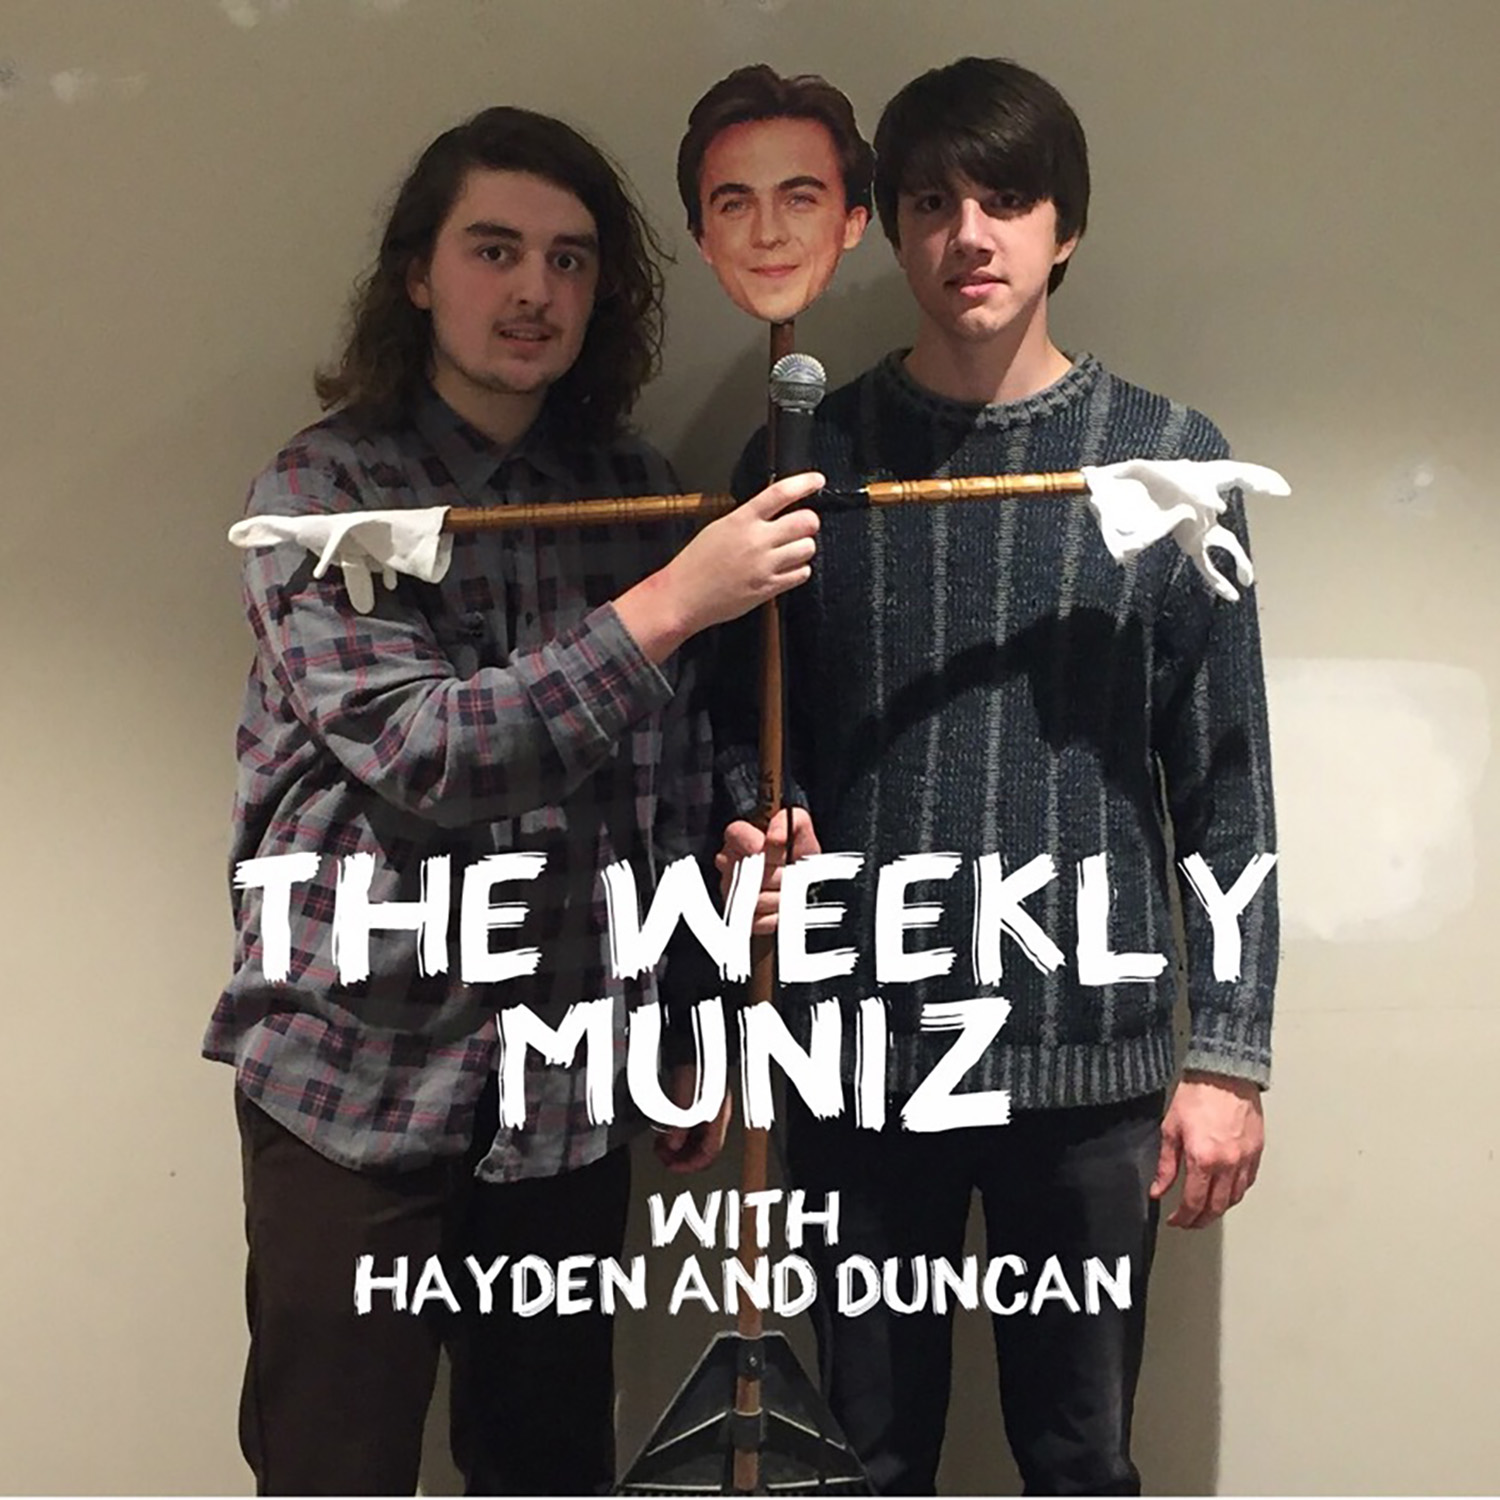 The Weekly Muniz